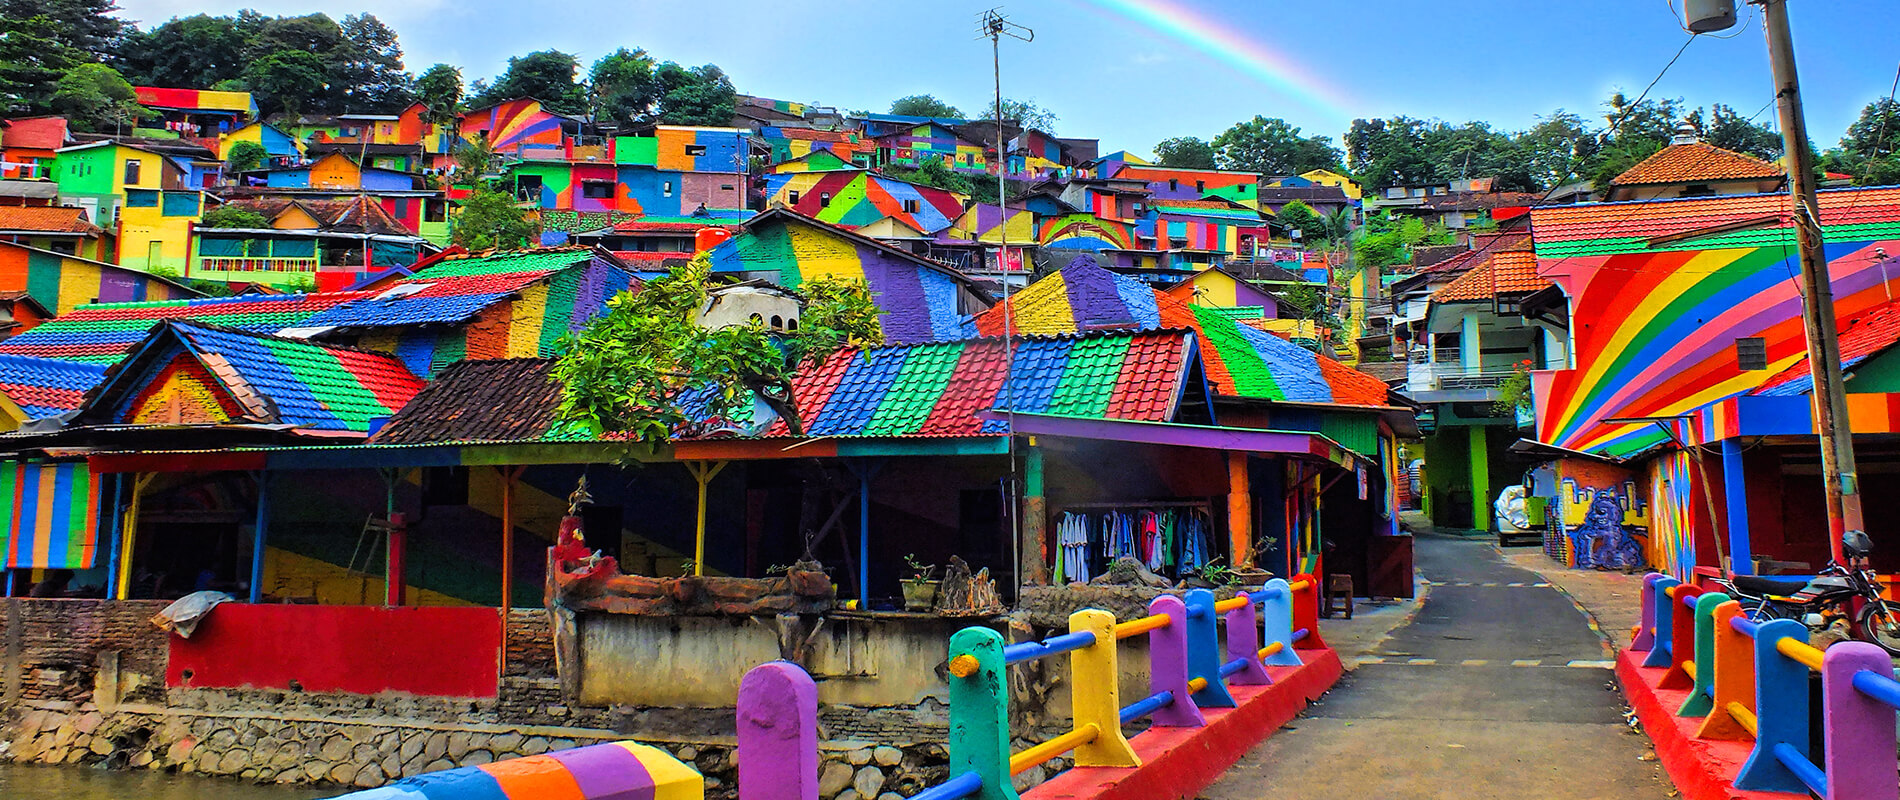 Kampung Pelangi, the Rainbow Village in Indonesia